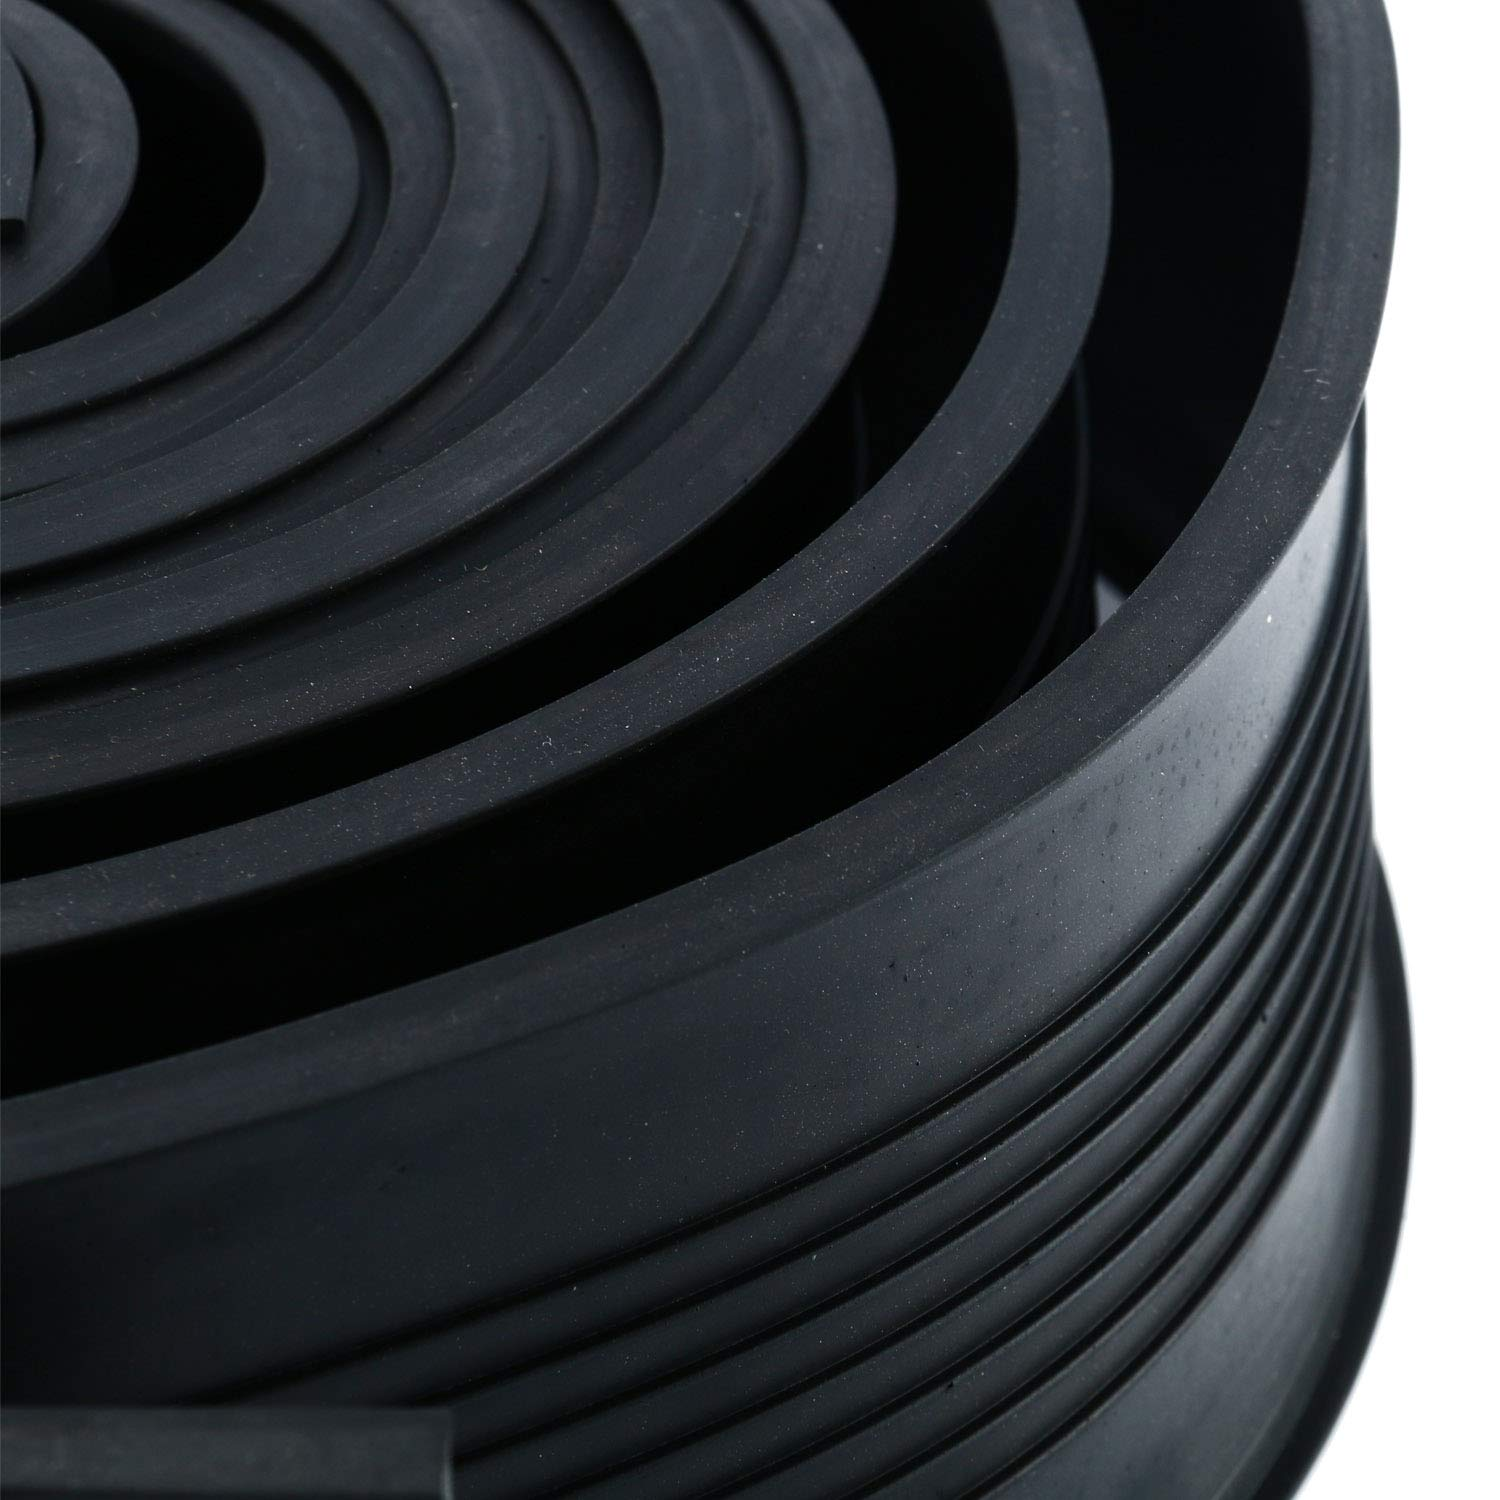 Homend Garage Door Bottom Weather Stripping Rubber Seal Strip Replacement, 5/16'' T Ends, 3 3/4'' Width X 20 Feet Lenth (Black) by Homend (Image #8)